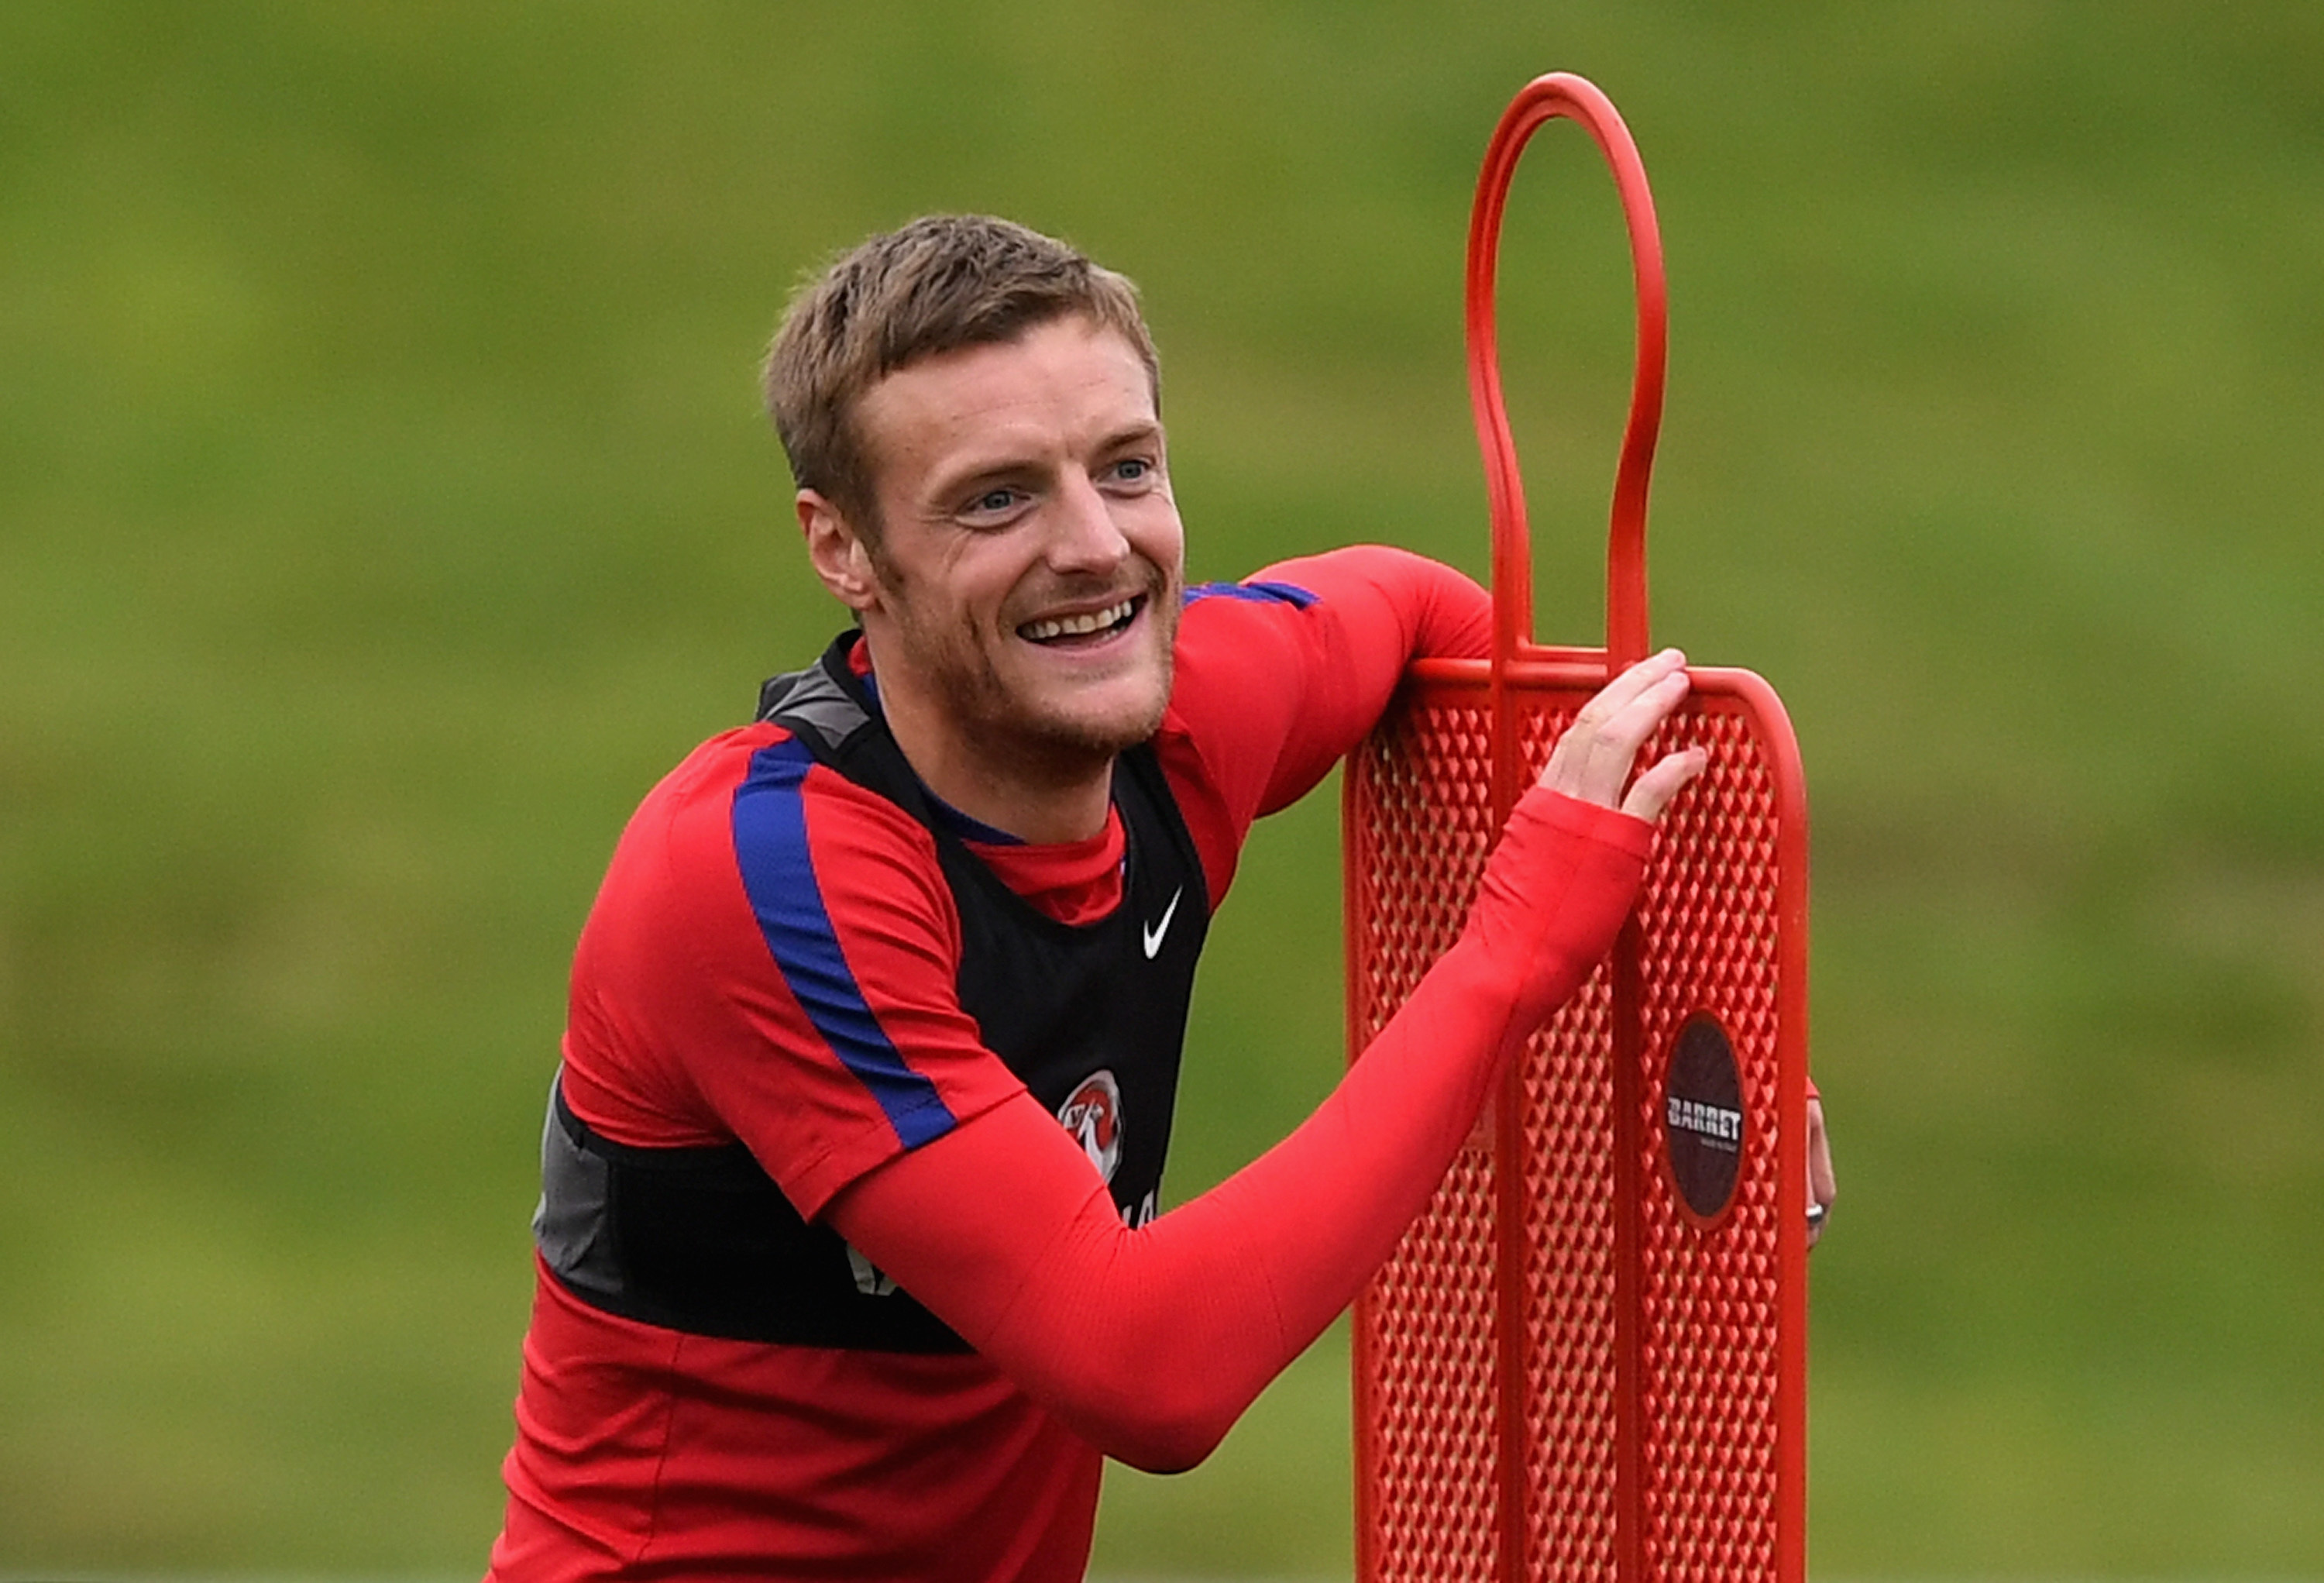 Jamie Vardy has teamed up with local company Insights (Photo by Shaun Botterill/Getty Images)